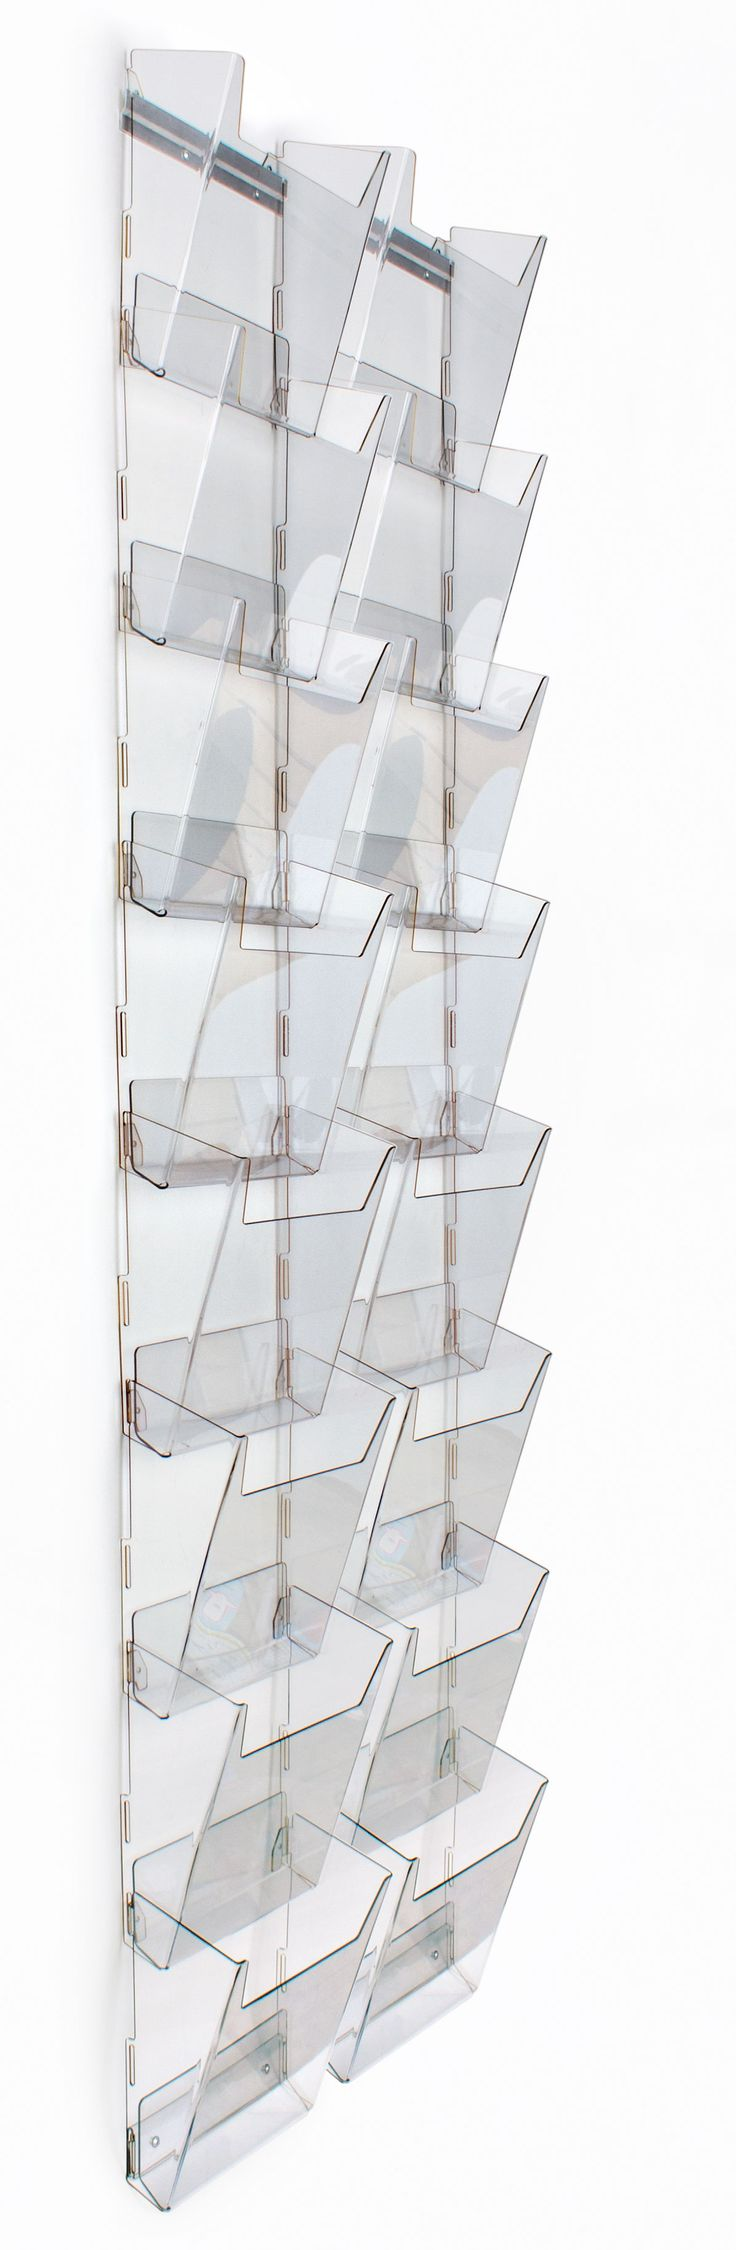 8-Tier Magazine Rack for Wall Mount, 16 Pockets Fit 8.5x11 Catalogs, Full View, Clear